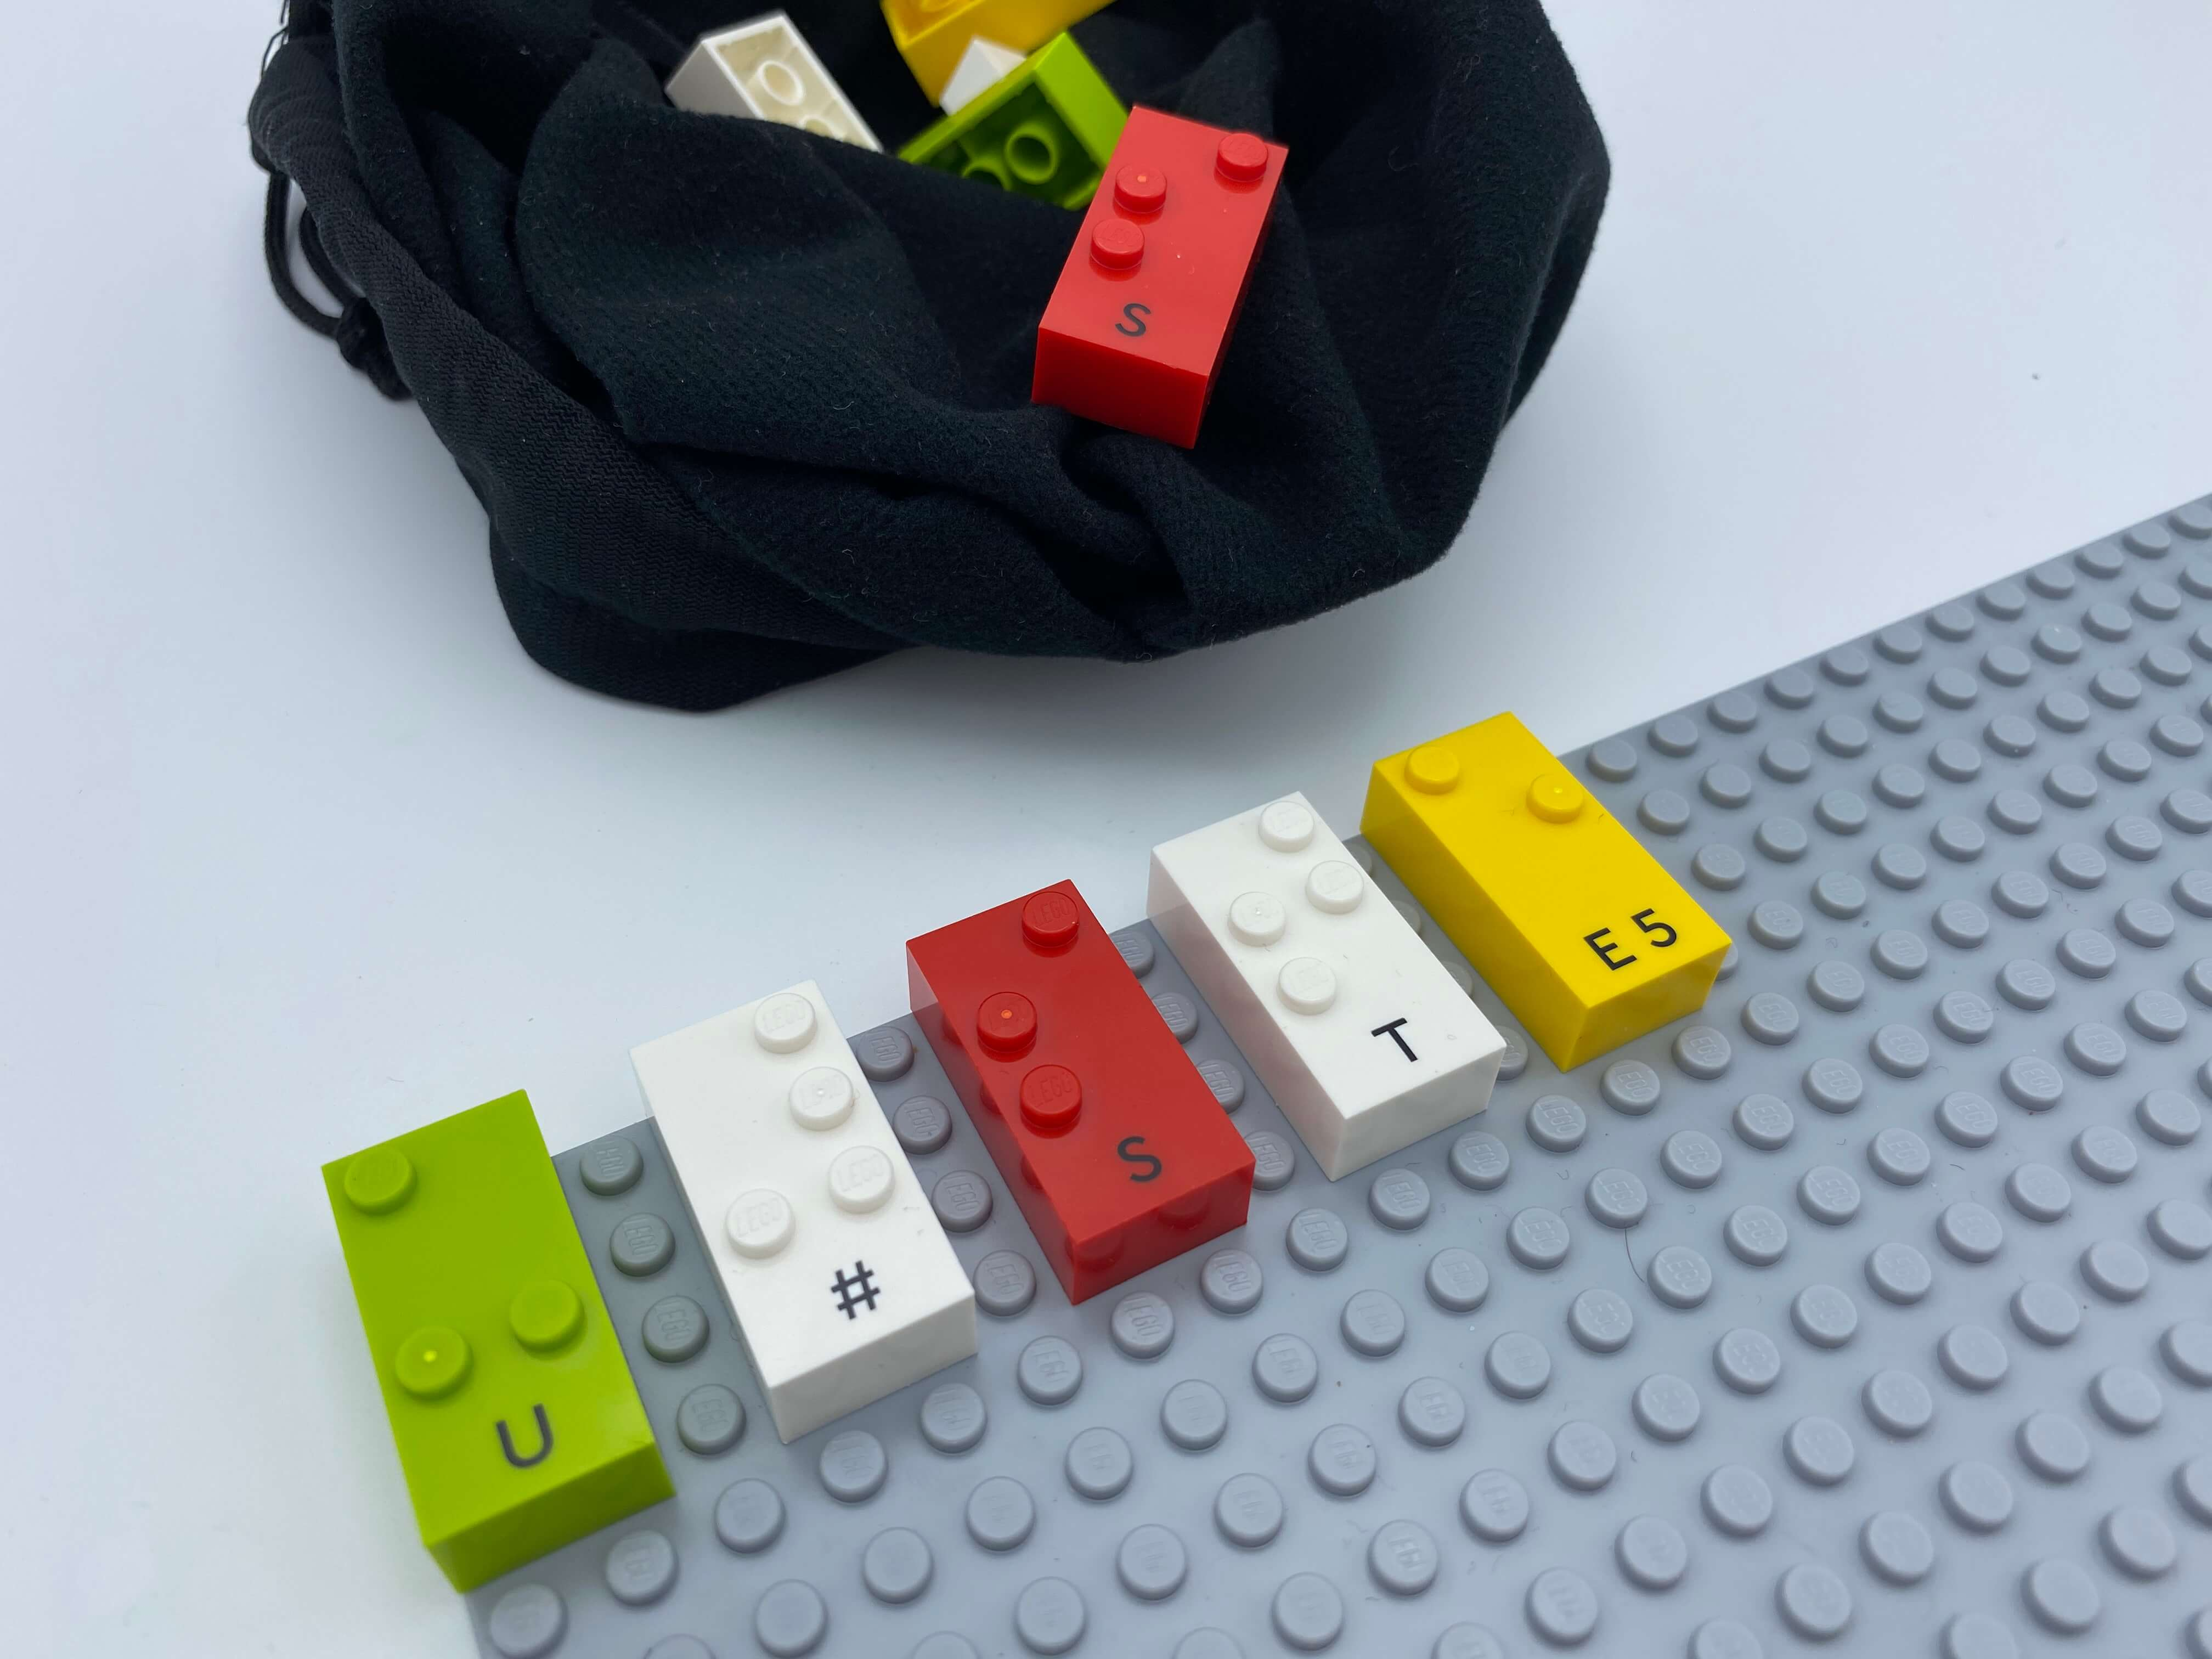 Bricks u, #, s, t, e aligned on the base plate, a bag with exact same set of letters hidden.